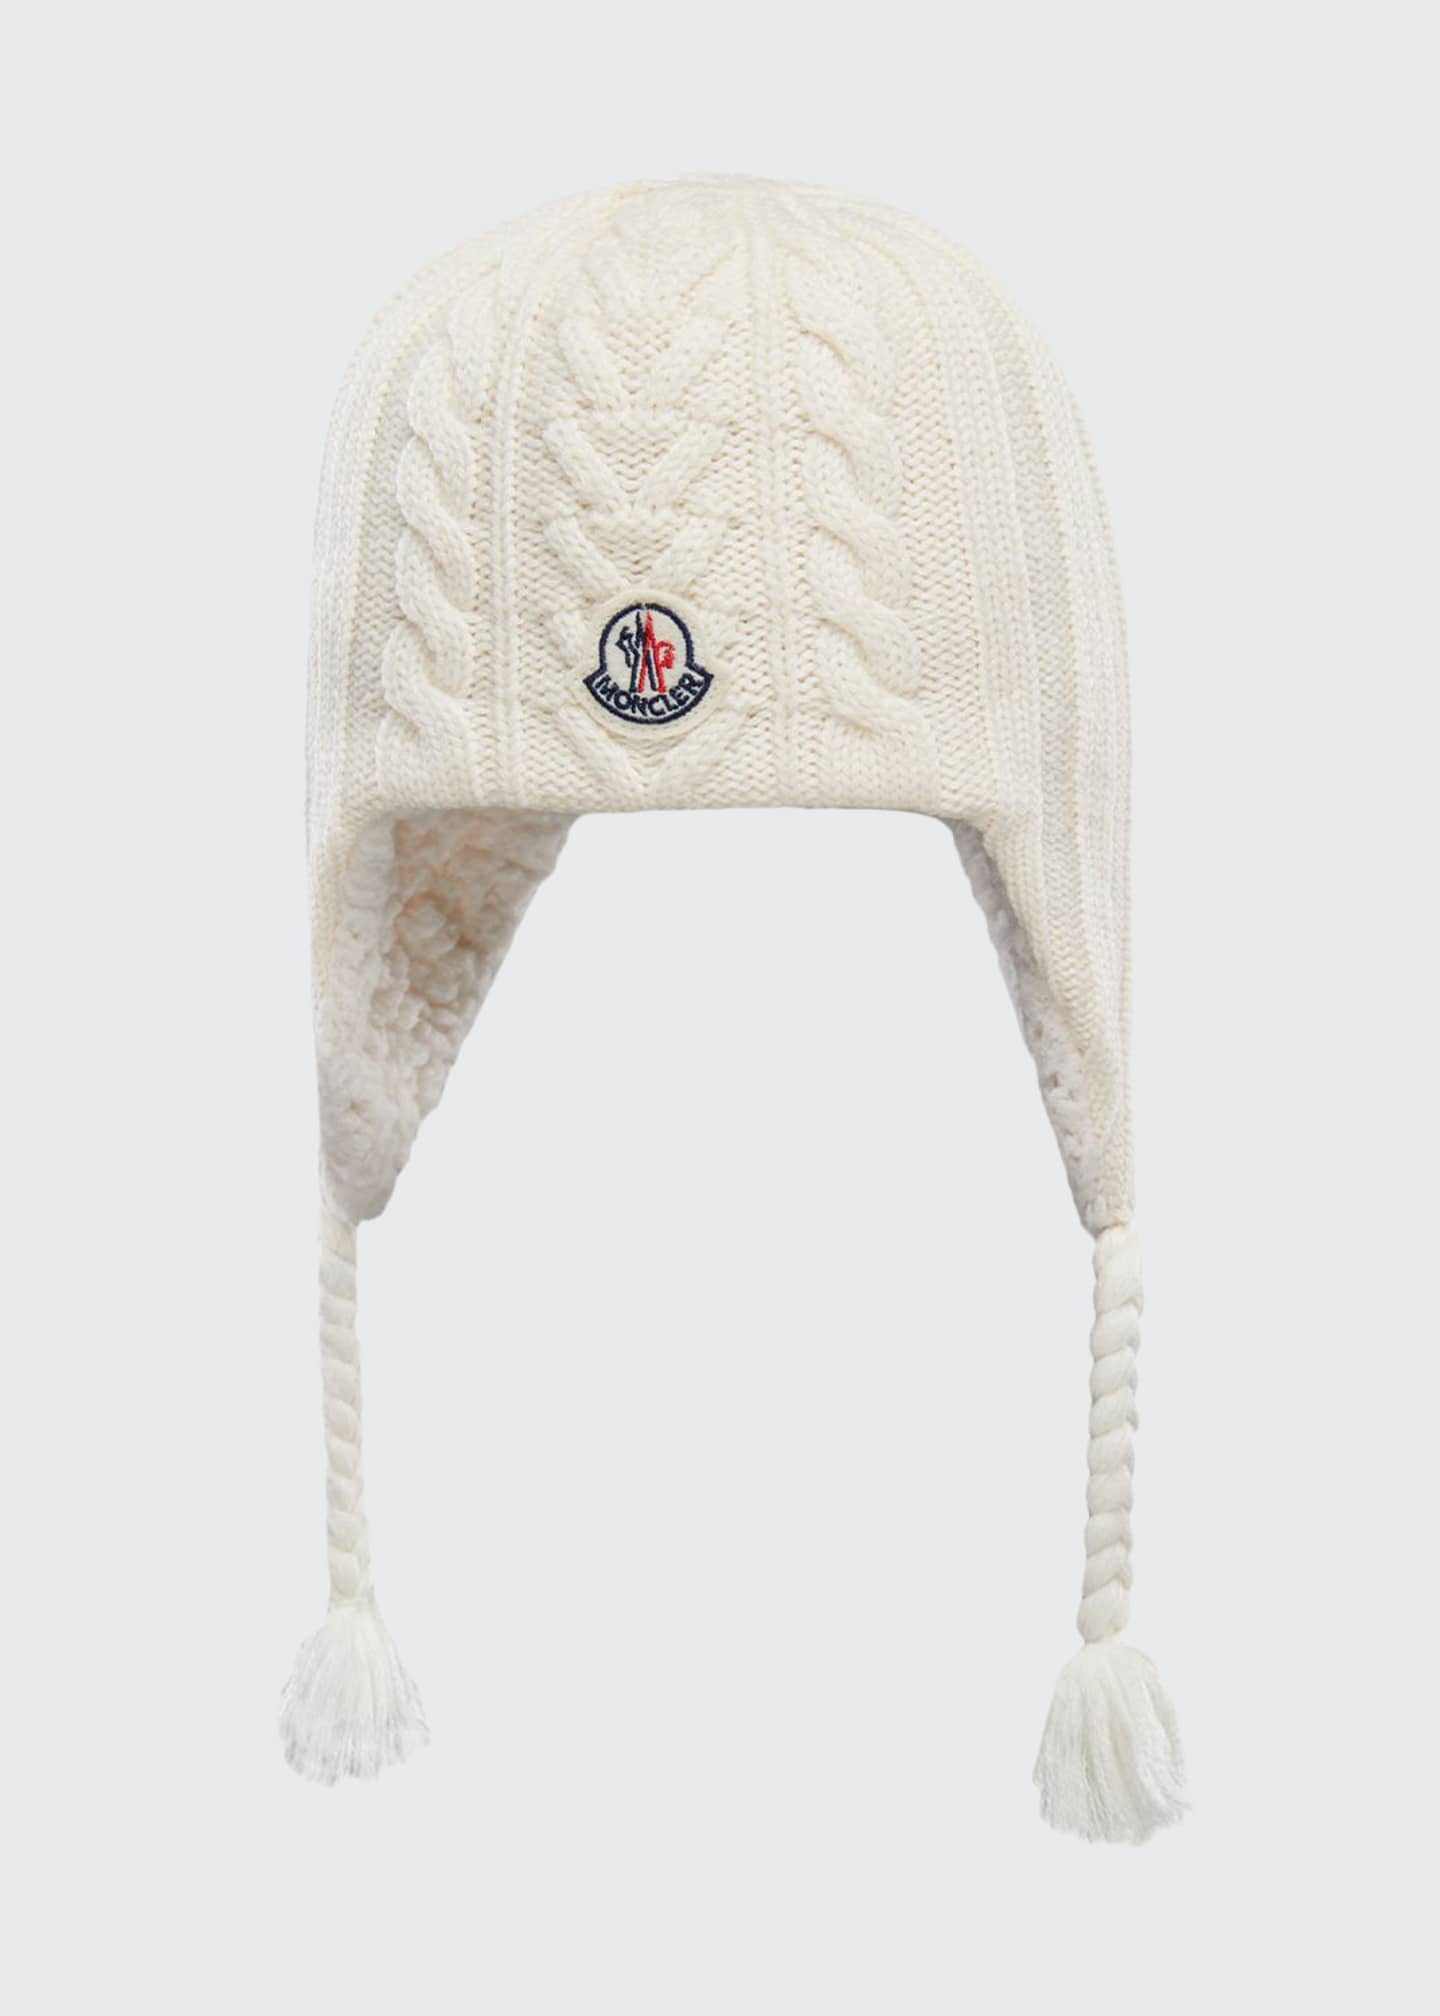 Moncler Kid's Knit Wool Beanie w/ Braid Tassels